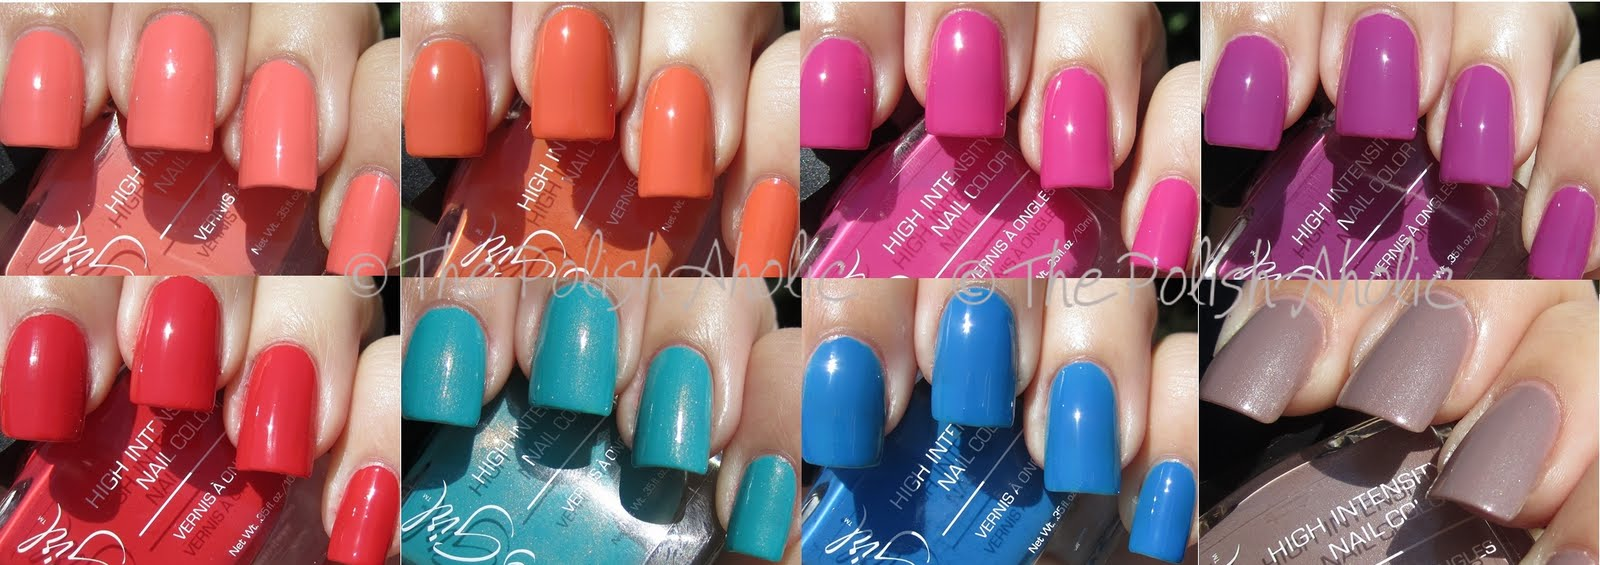 The PolishAholic: Jesse\'s Girl JulieG Collection Swatches!